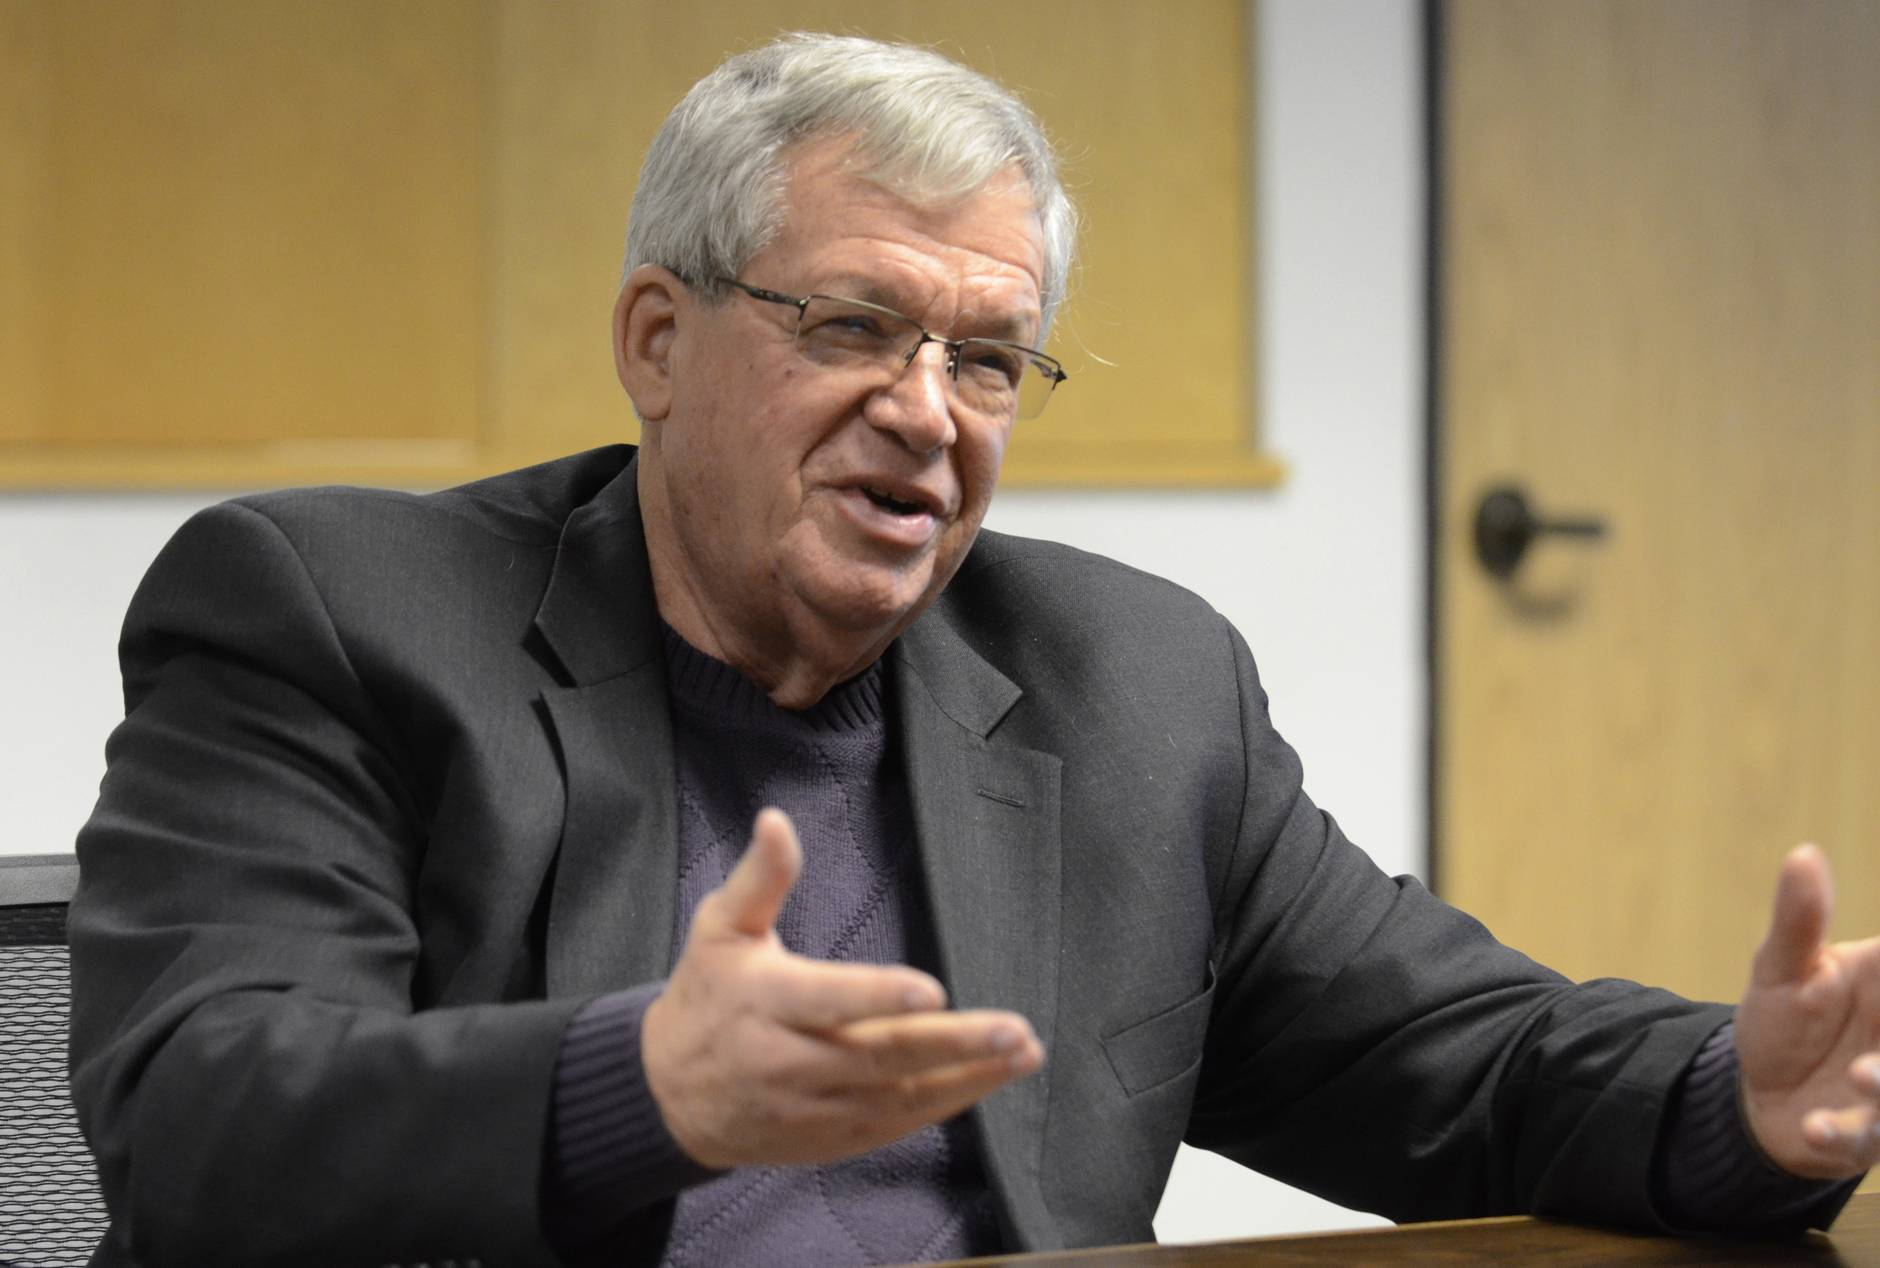 Hastert among Republicans supporting immigration reform